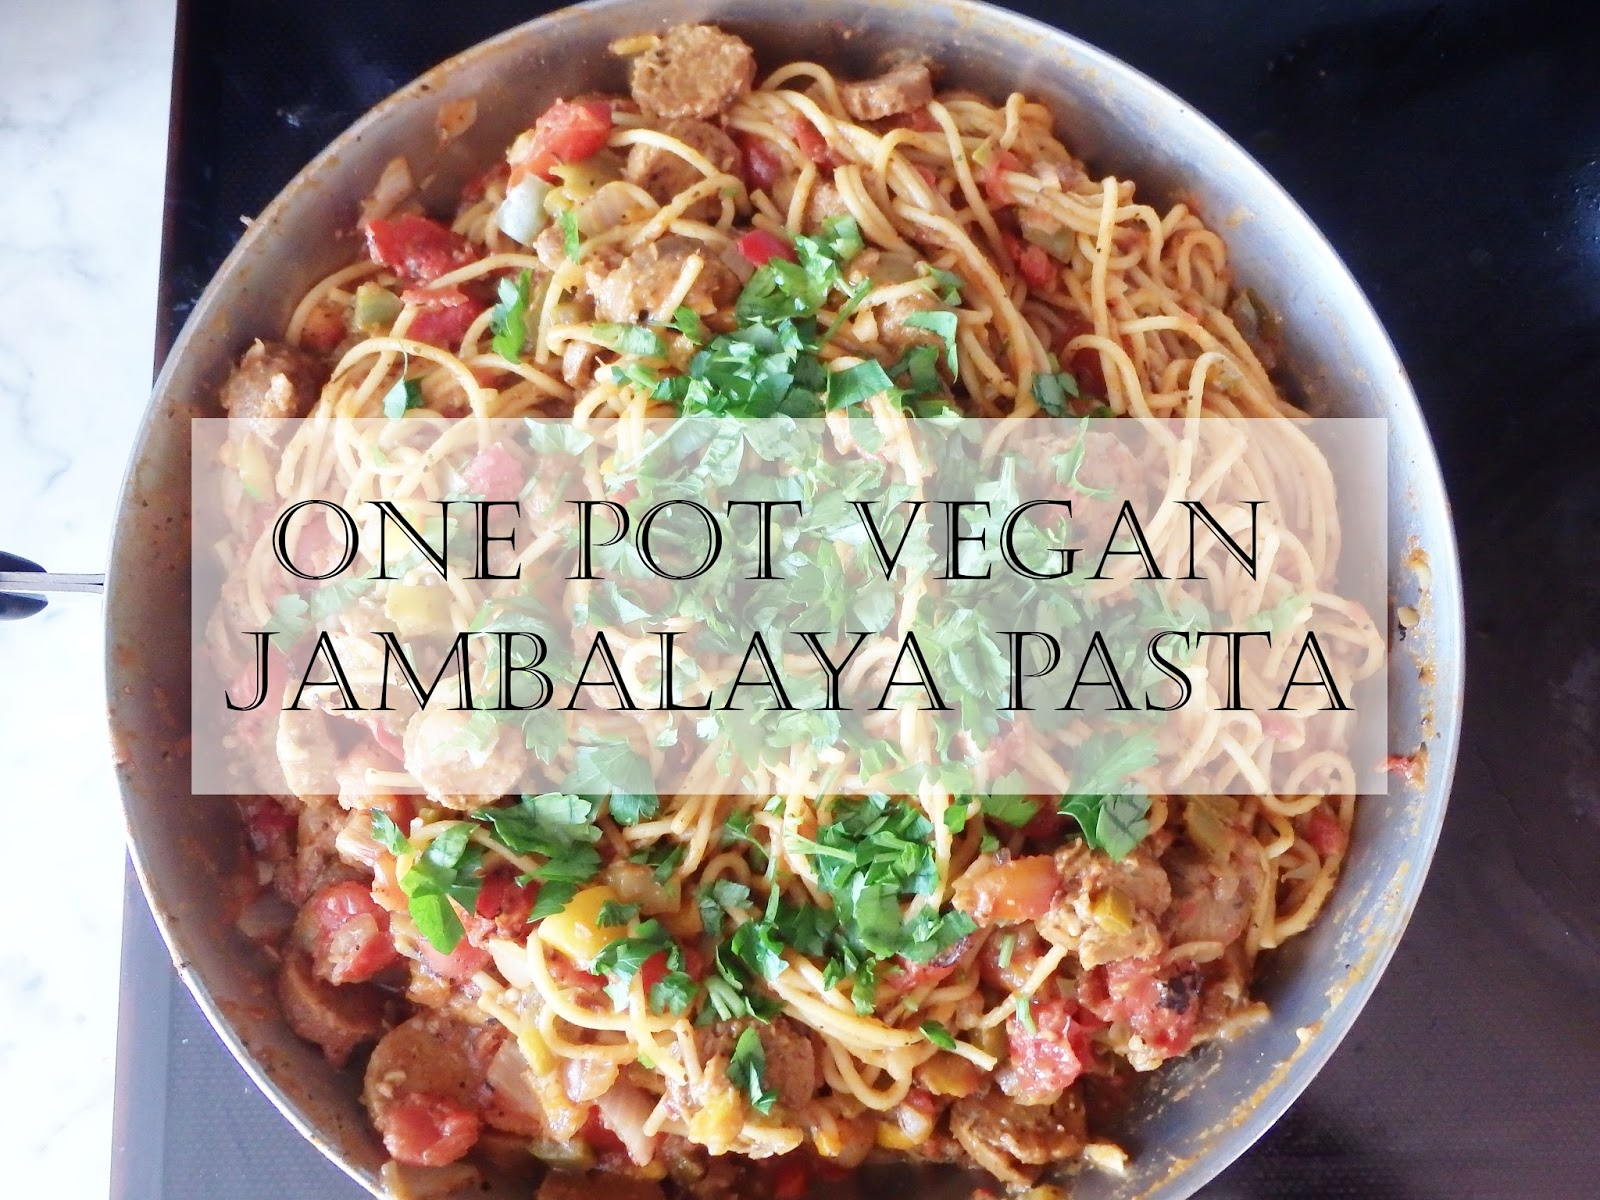 One Pot Vegan Jambalaya Pasta